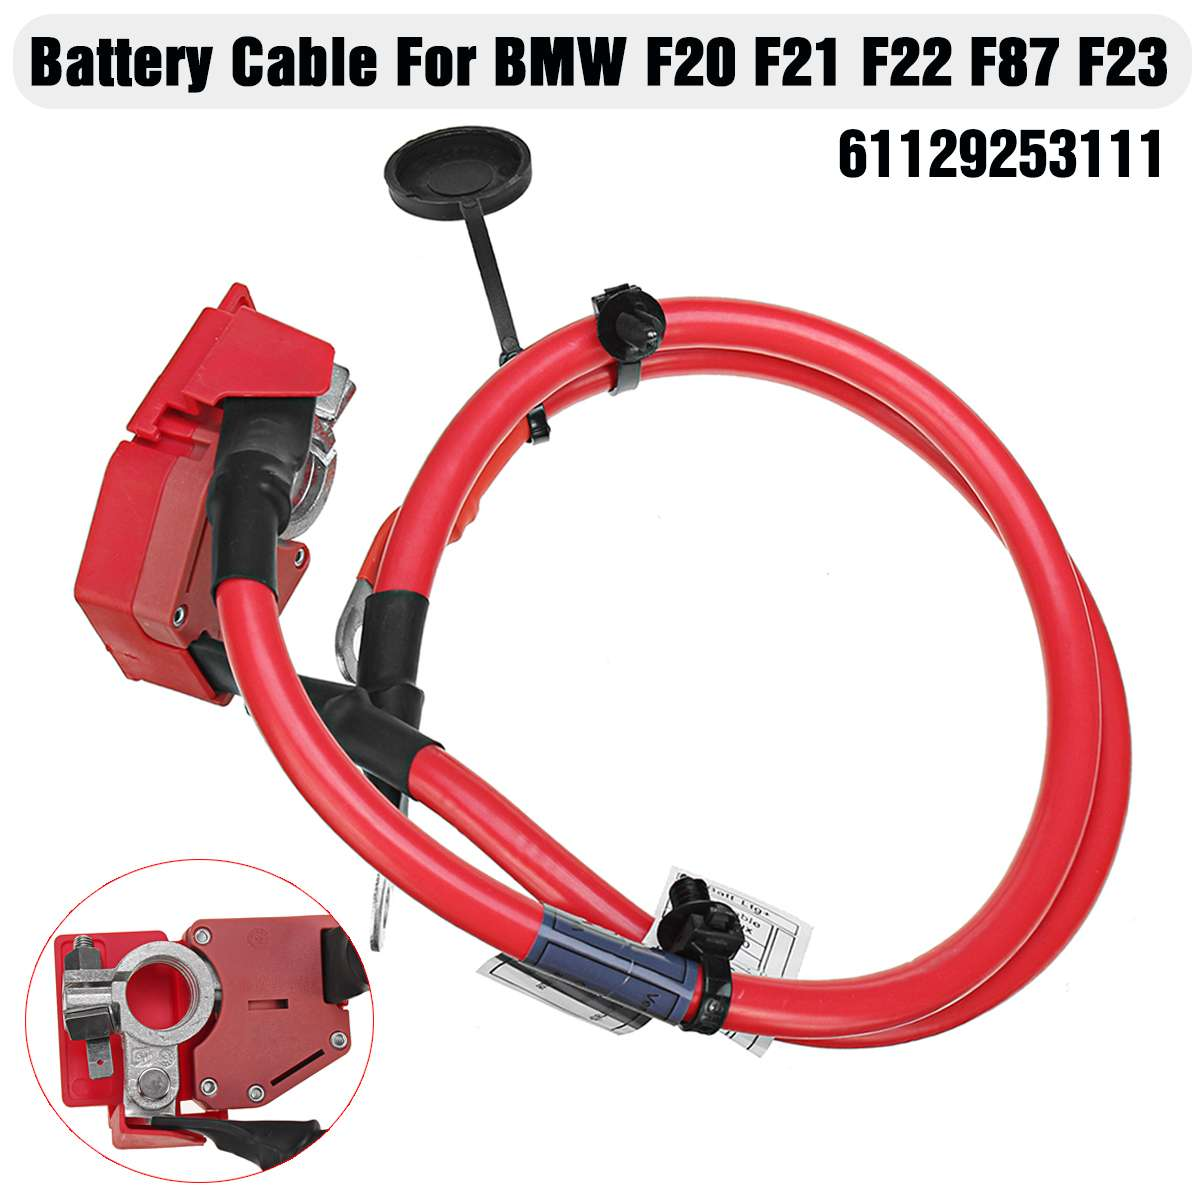 Car Accessories Positive Battery Fuse Cable 61129253111 For BMW 1 2 series F20 F21 LCI F22